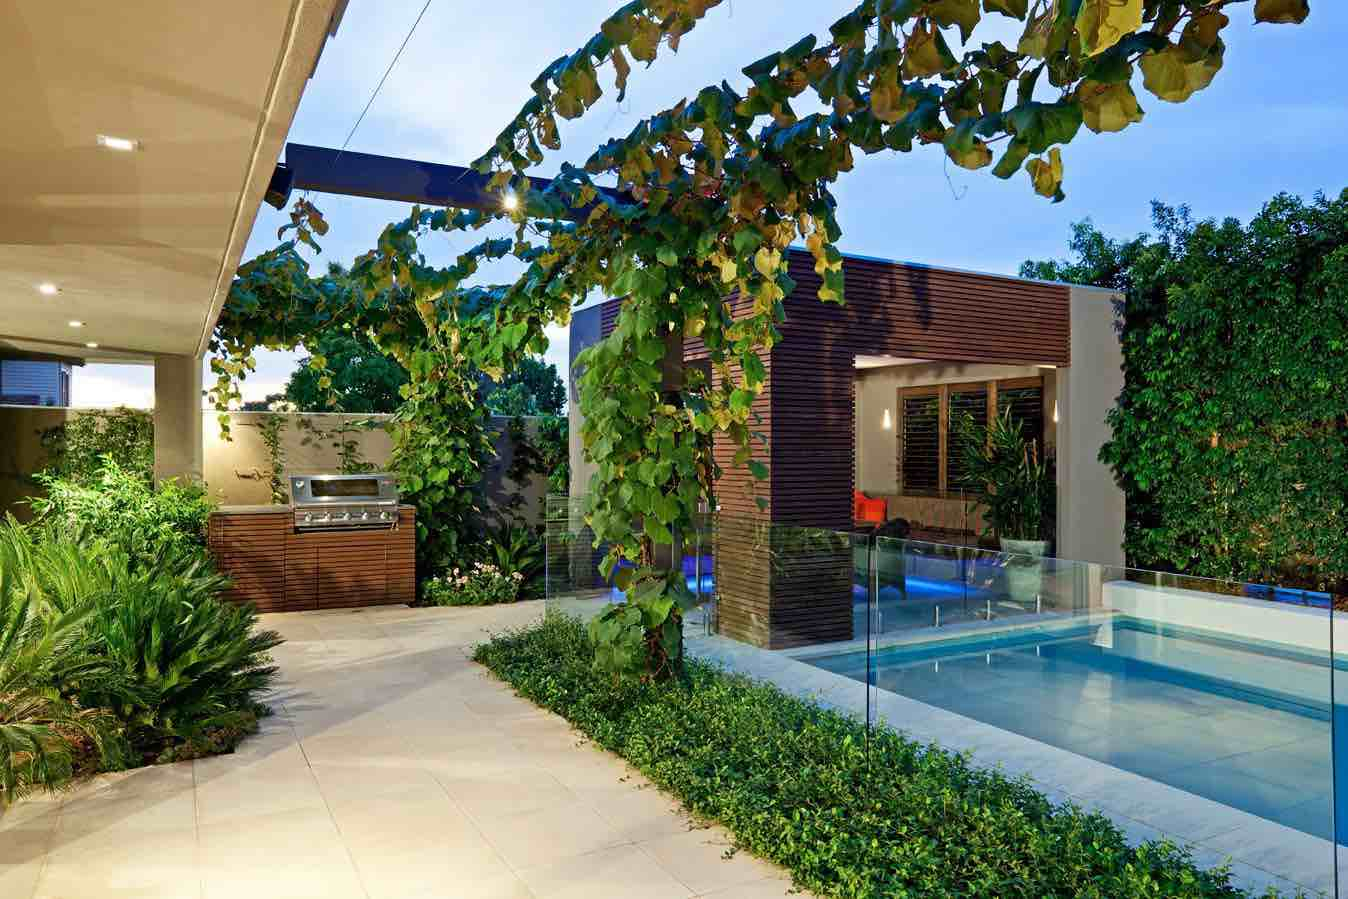 Small Backyard Design Ideas On A Budget 41 backyard design ideas for small yards | worthminer